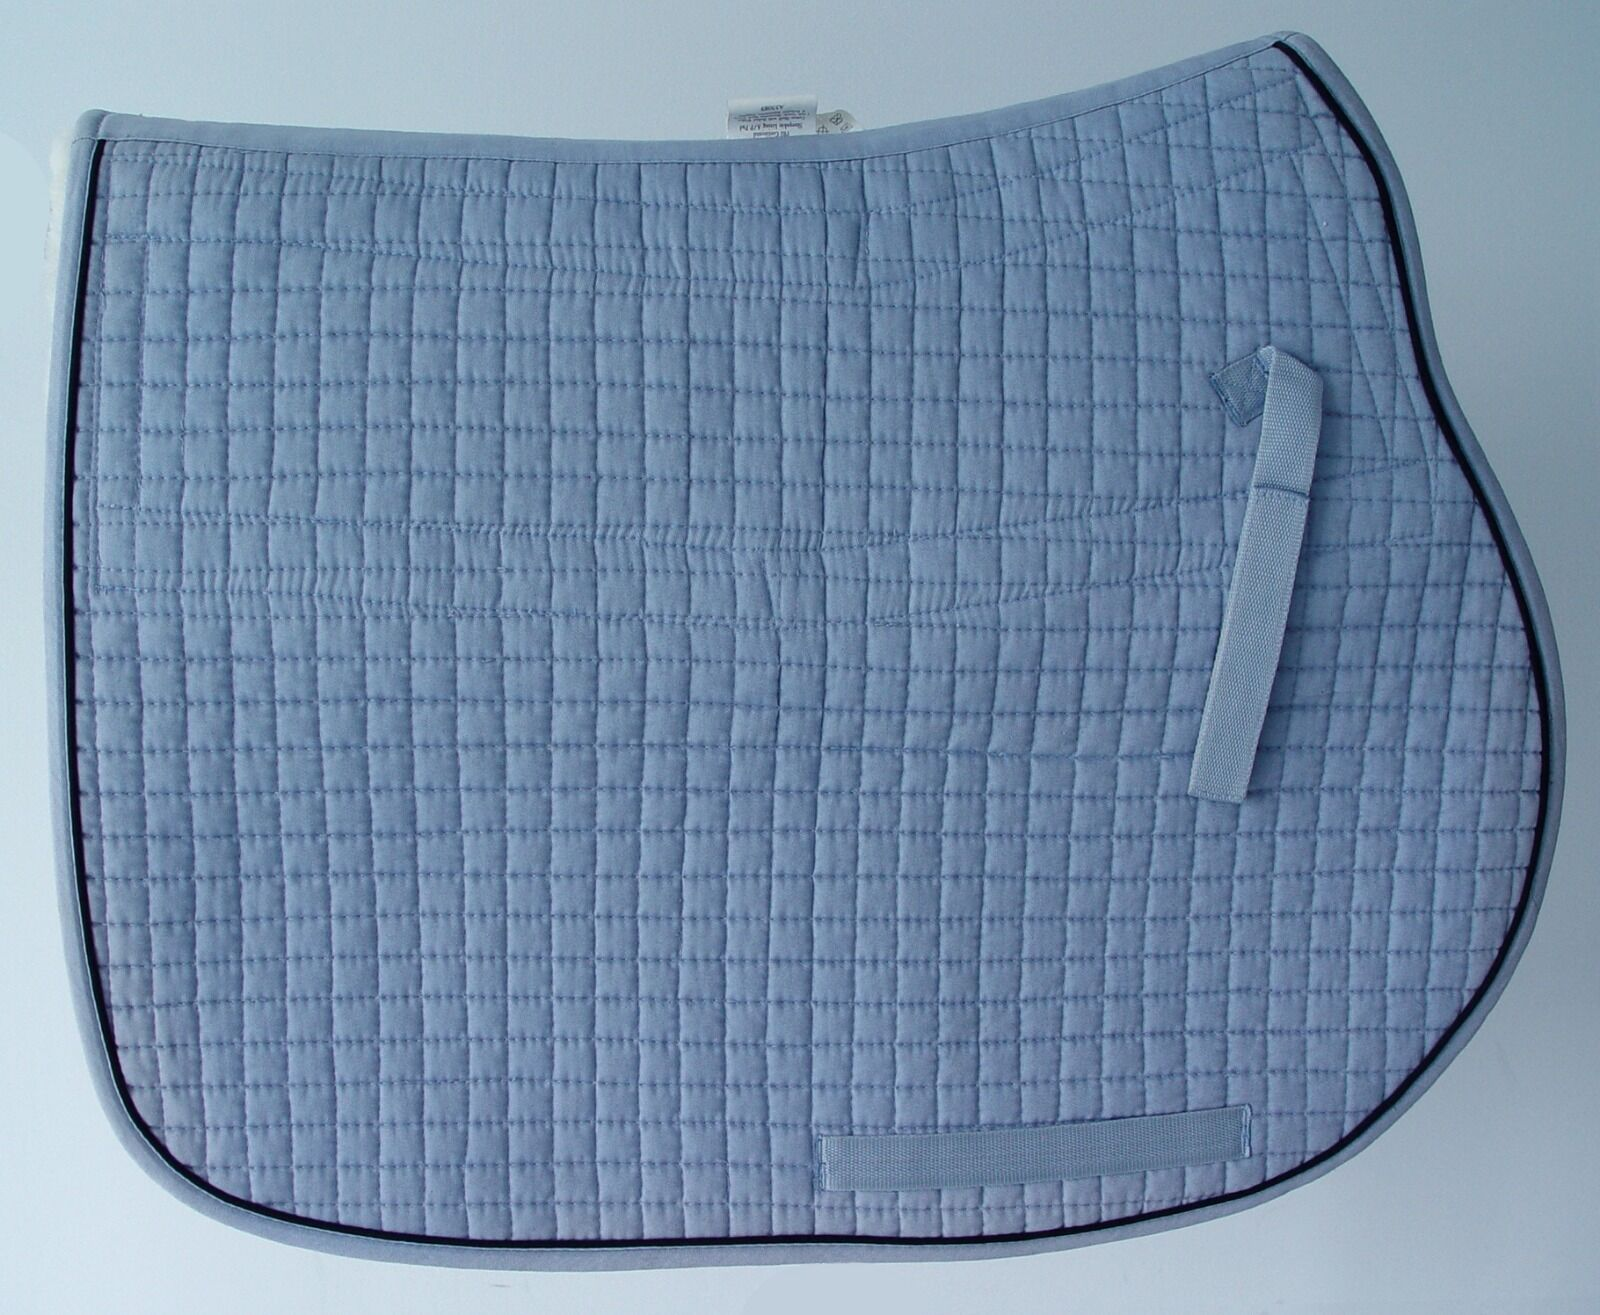 Sheepskin AP Pad, Detachable, Spine Channeled, High Wither, EquuFelt, Baby blu